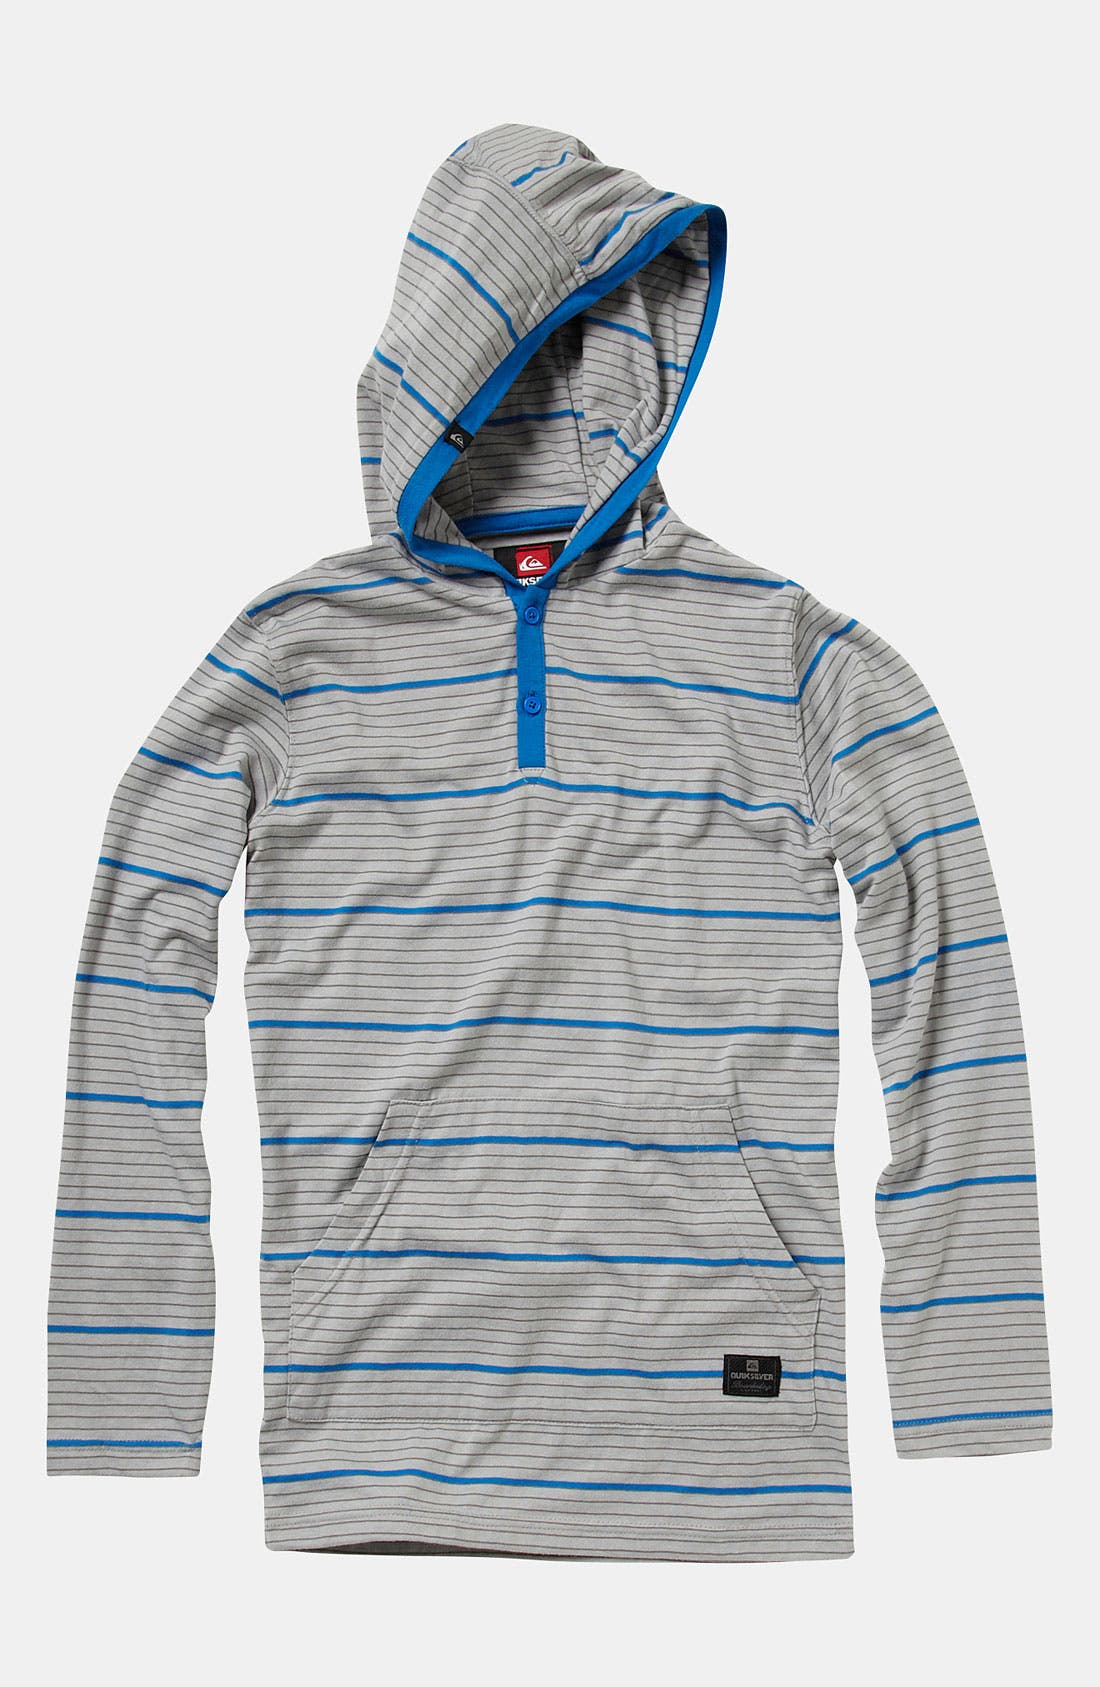 Alternate Image 1 Selected - Quiksilver 'Hodad Stoke' Knit Hoodie (Toddler)